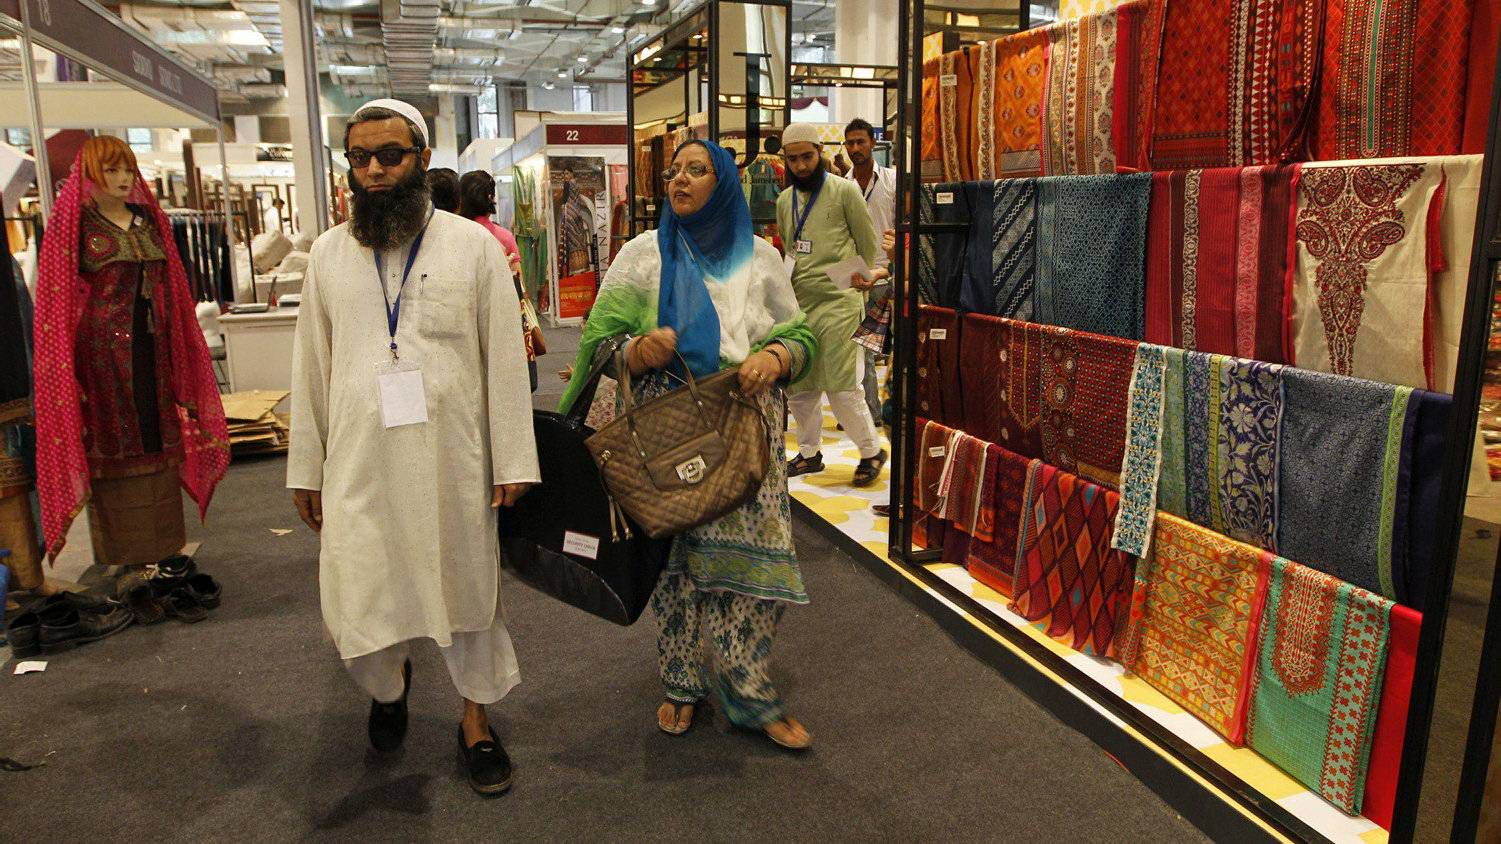 e2b53b3f70 Chic Pakistani clothing makes inroads in India - The Globe and Mail